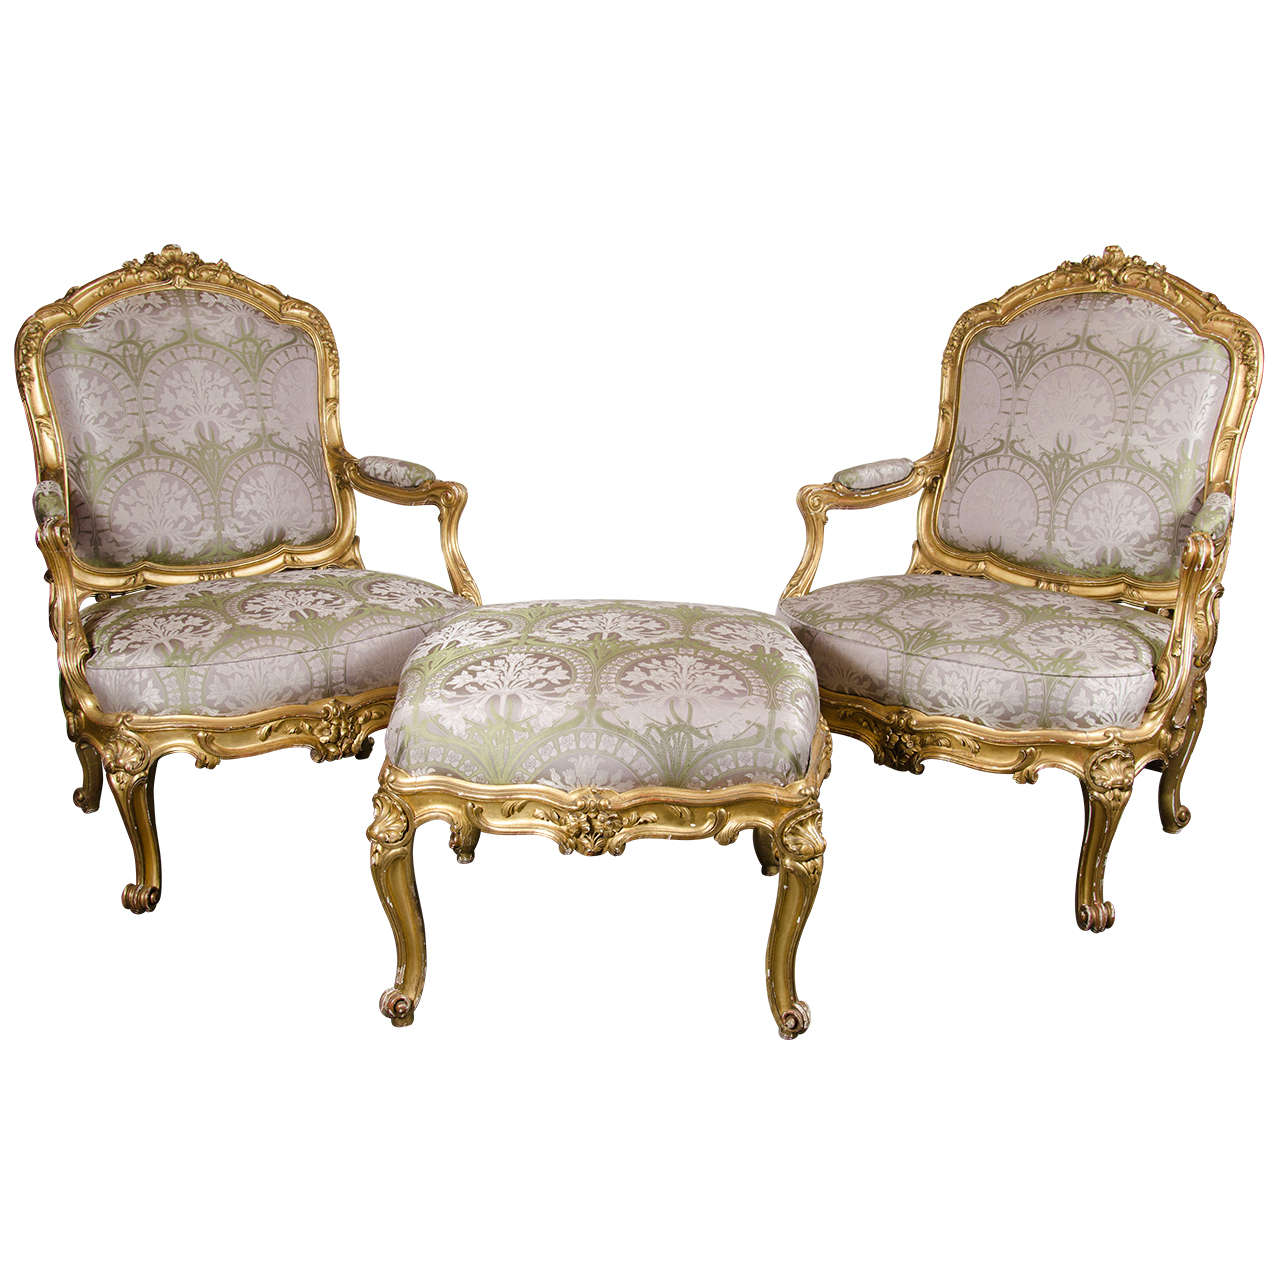 leather bergere chair and ottoman antique office wheels pair of french chairs in gilded wood